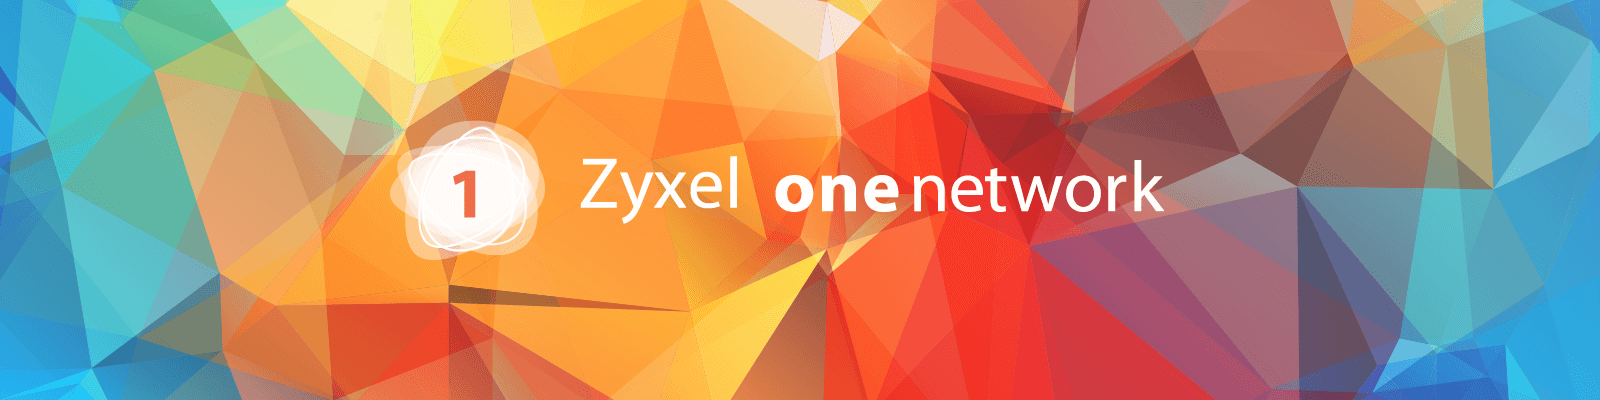 Zyxel One Network experience